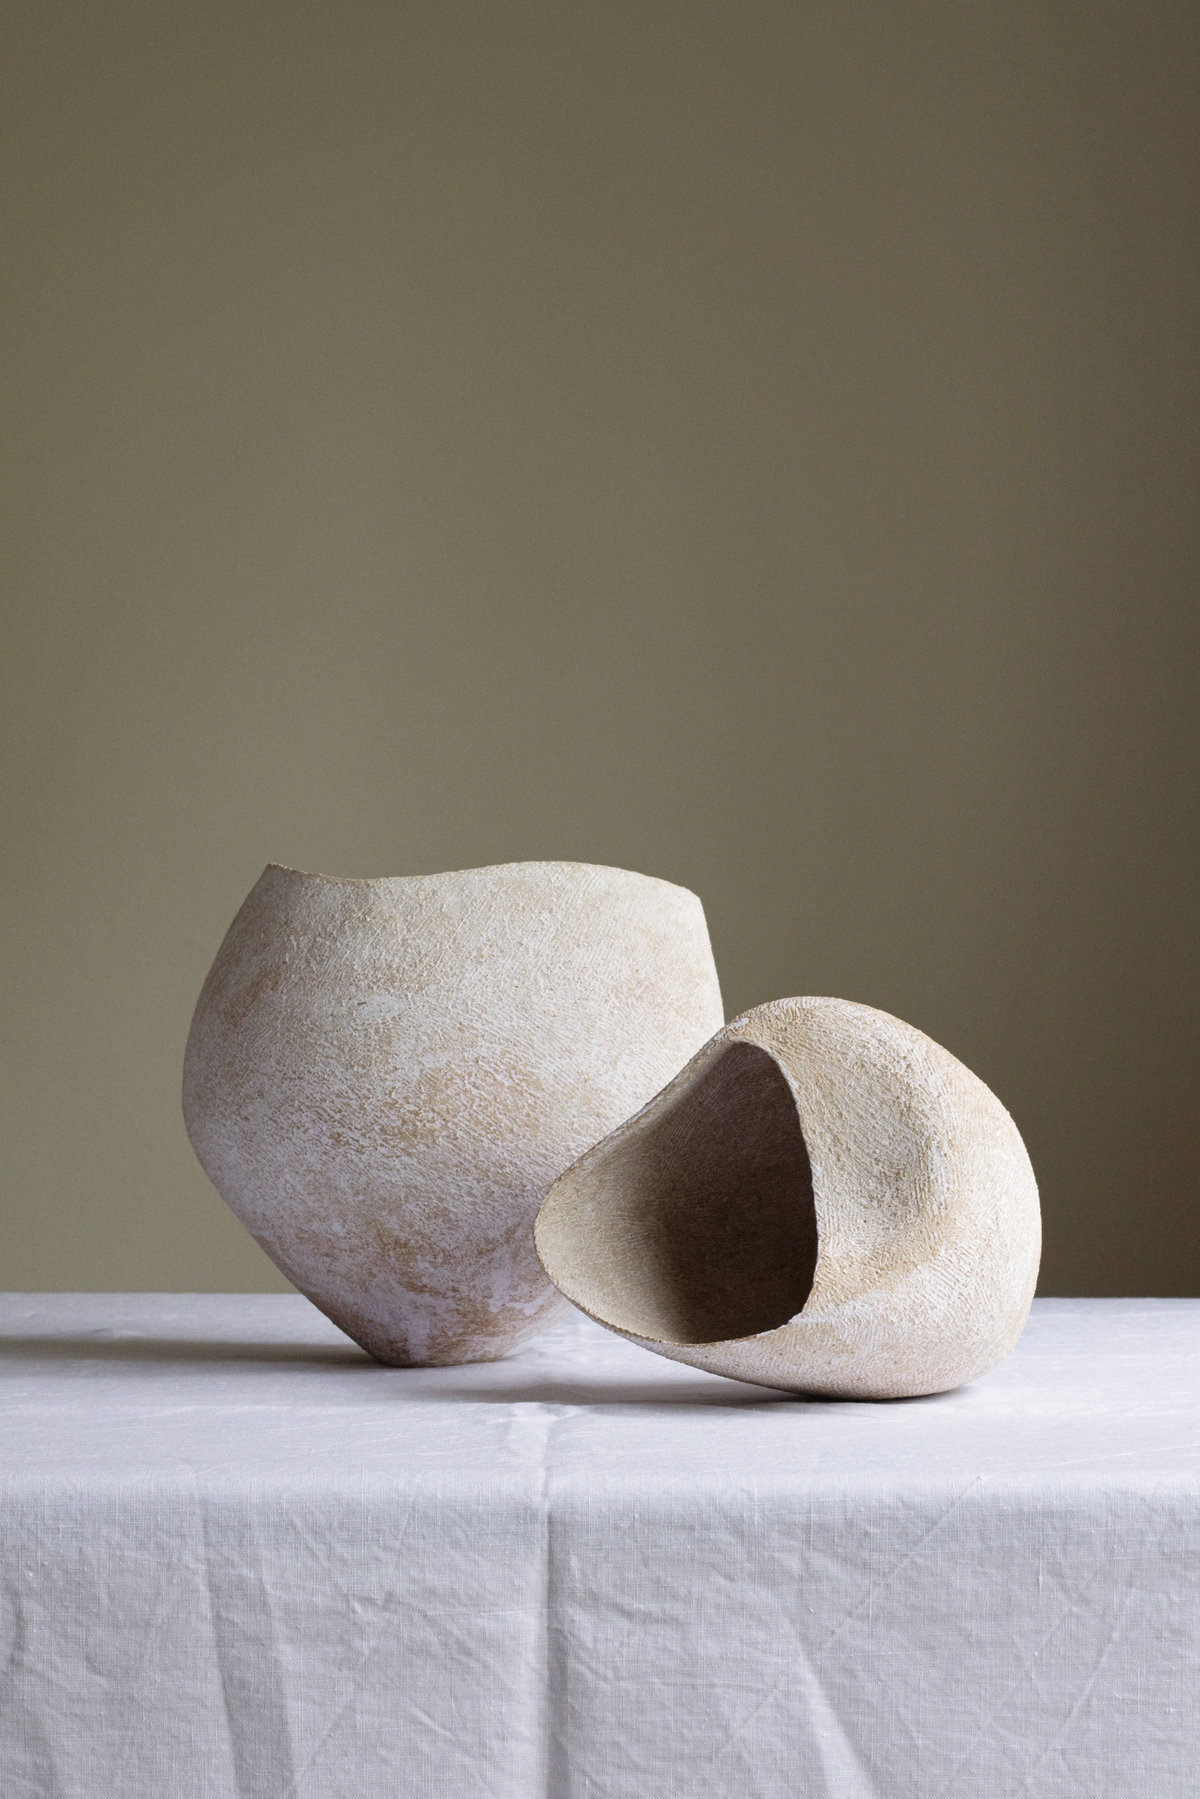 Yasha-Butler-Ceramic-Lithic-Vessel-Bowl-Sculpture-White-5091-3500px